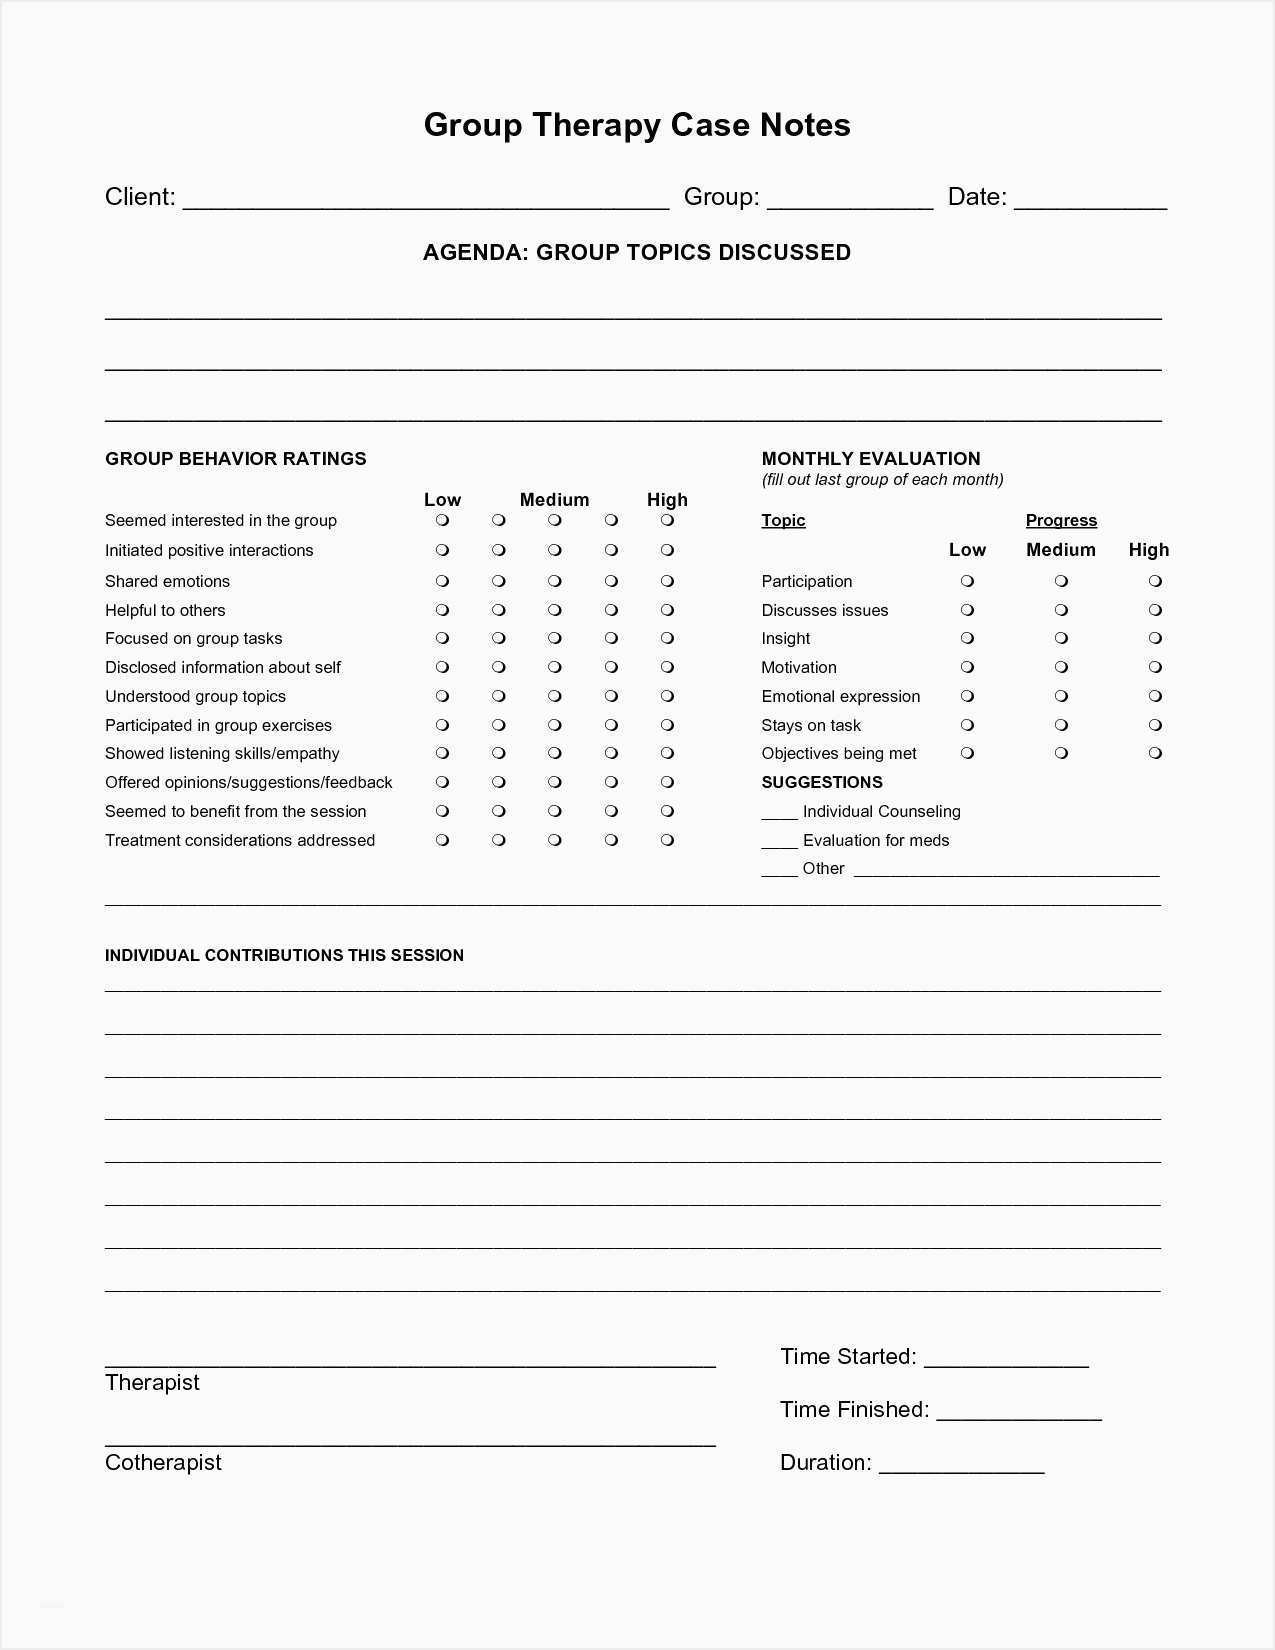 Consent Form Template Awesome Group Counseling Informed Consent Form Template New Informedent Form